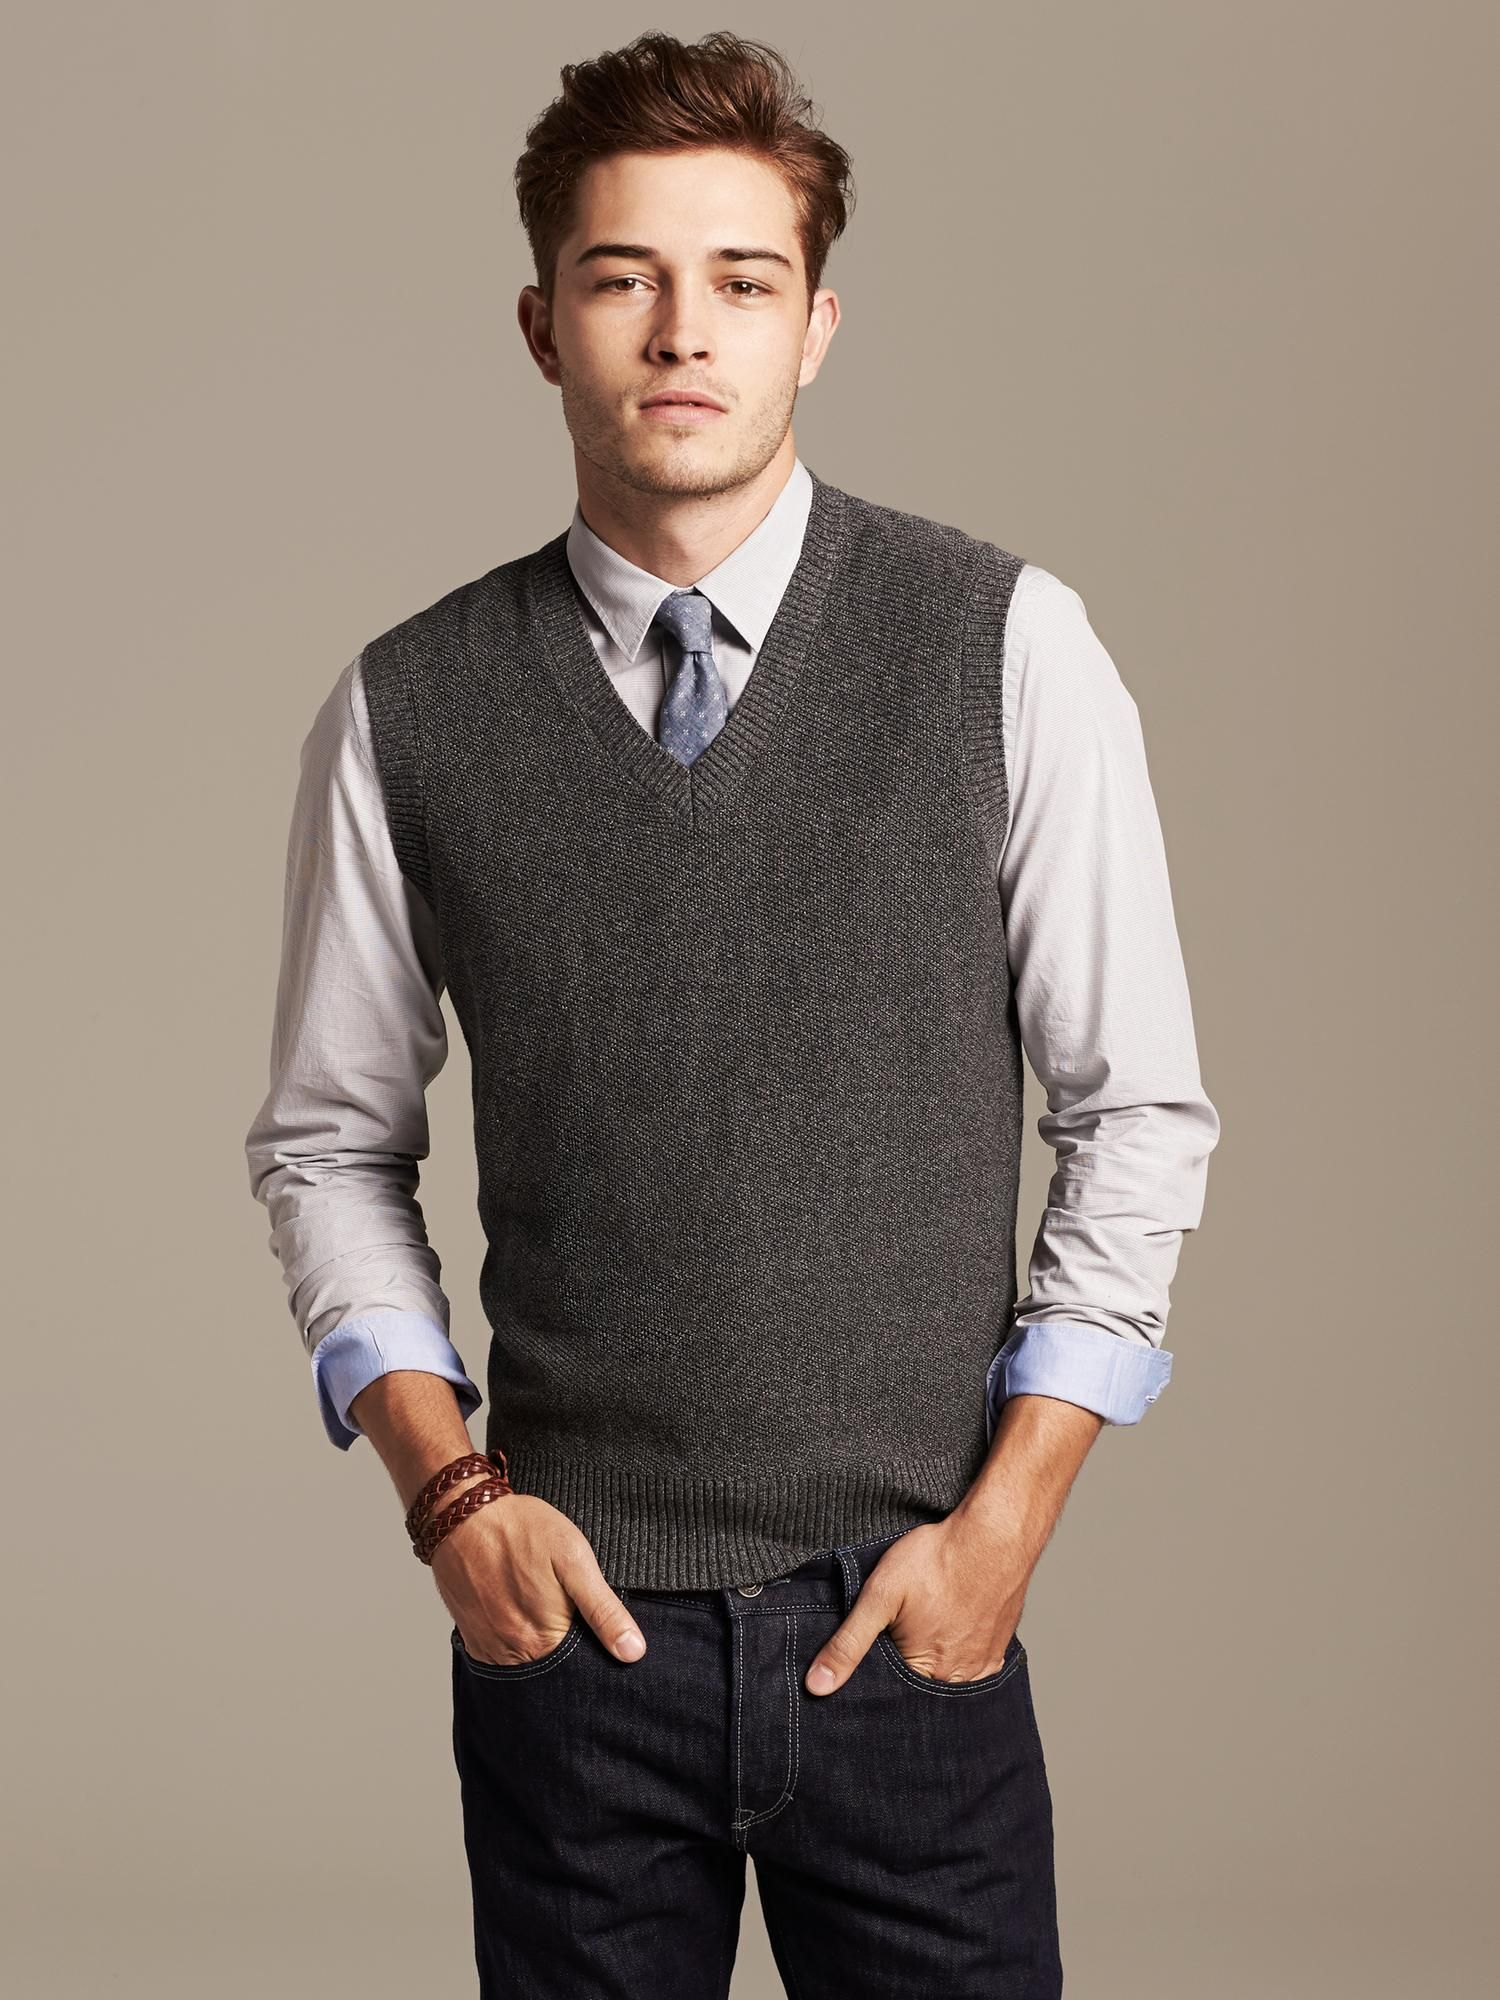 Explore Vest And Tie, Cardigans For Men and more!